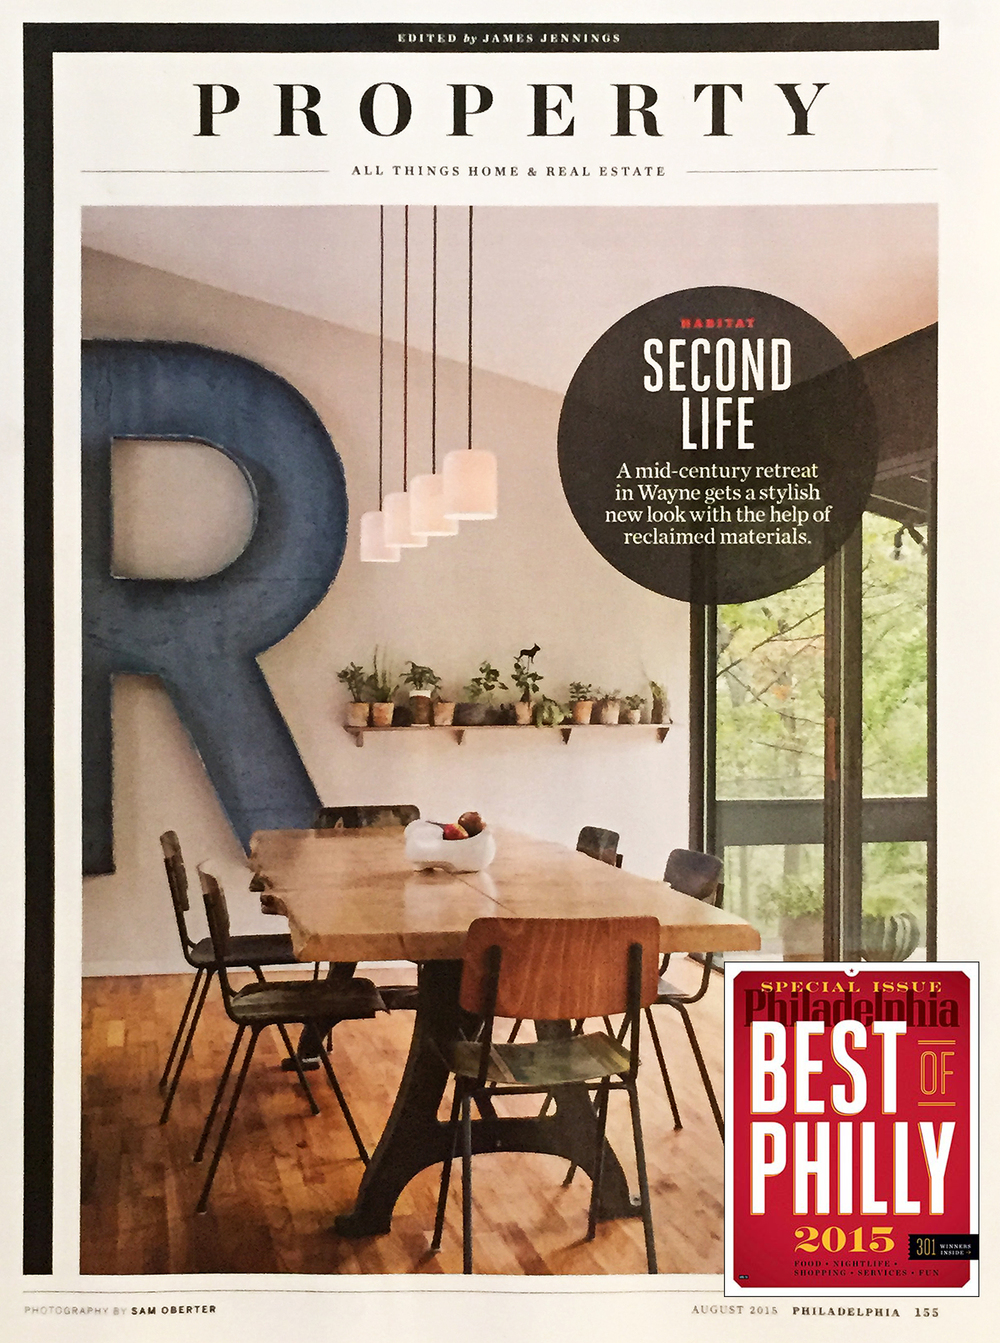 UPPER MAIN LINE RESIDENCE featured in Philadelphia Magazine